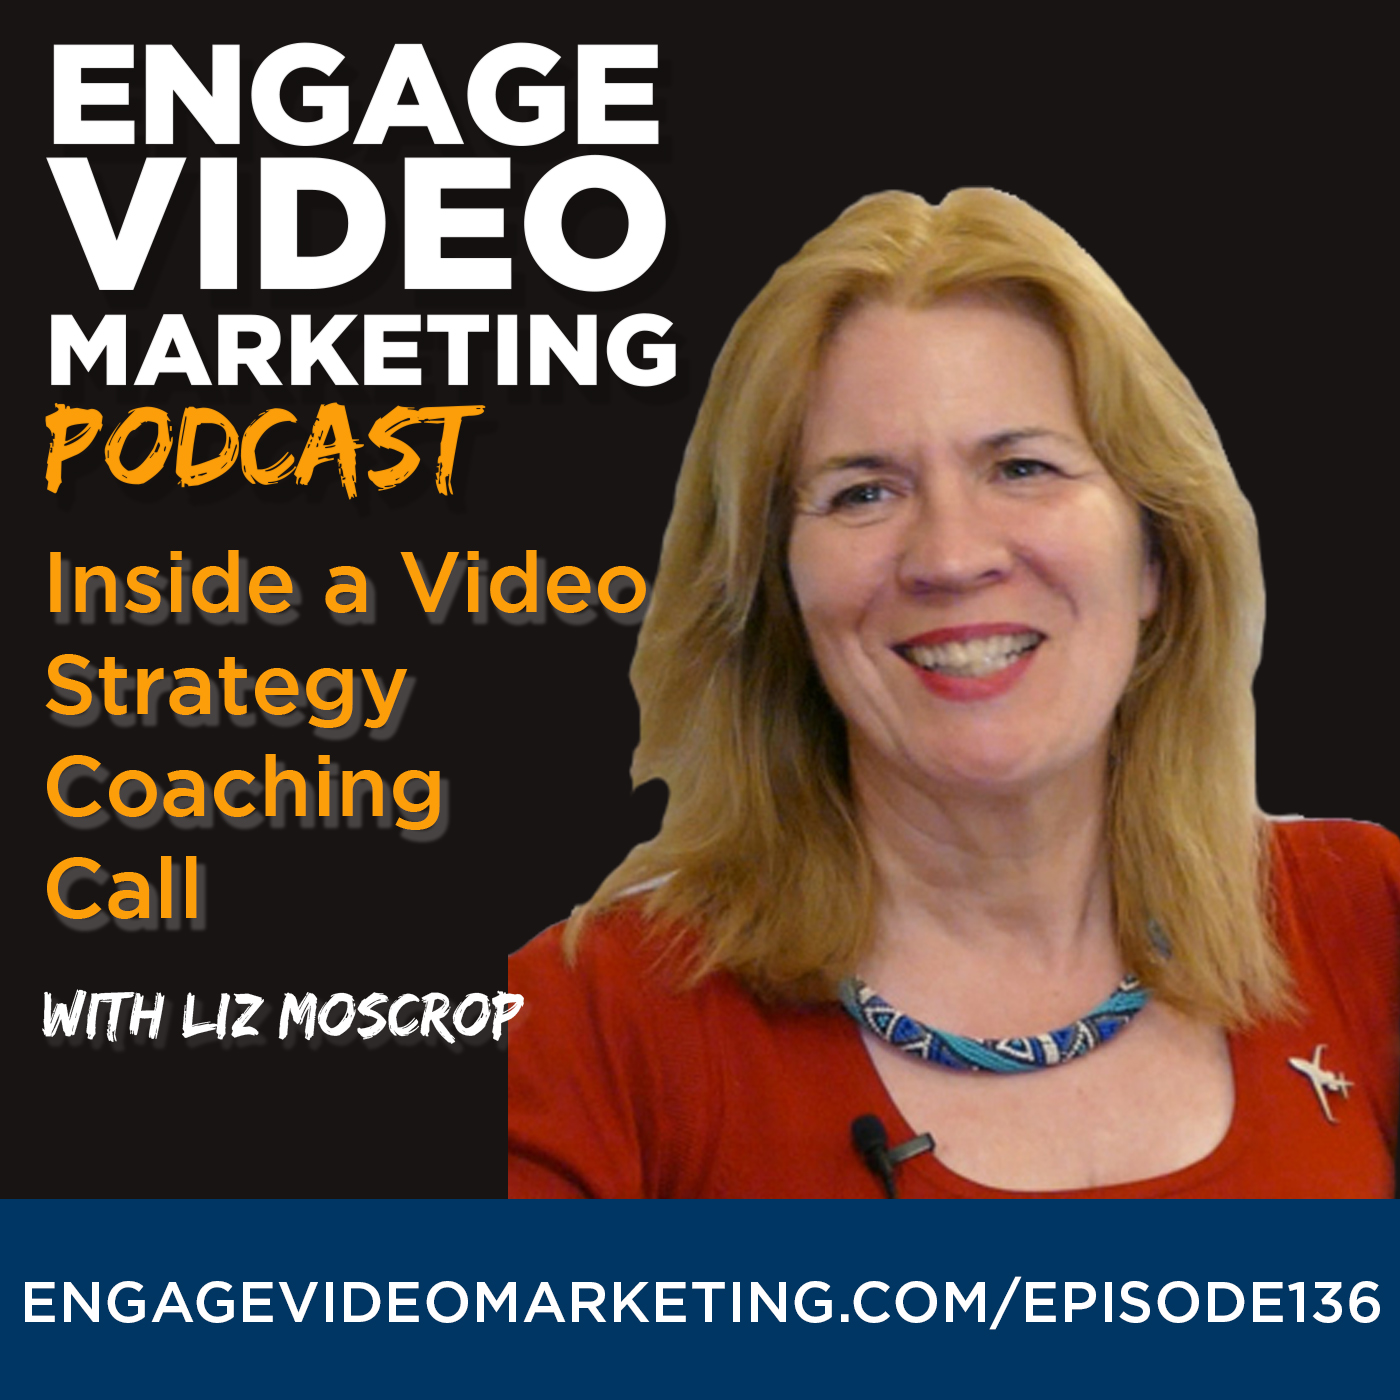 Inside a Video Strategy Coaching Call with Liz Moscrop